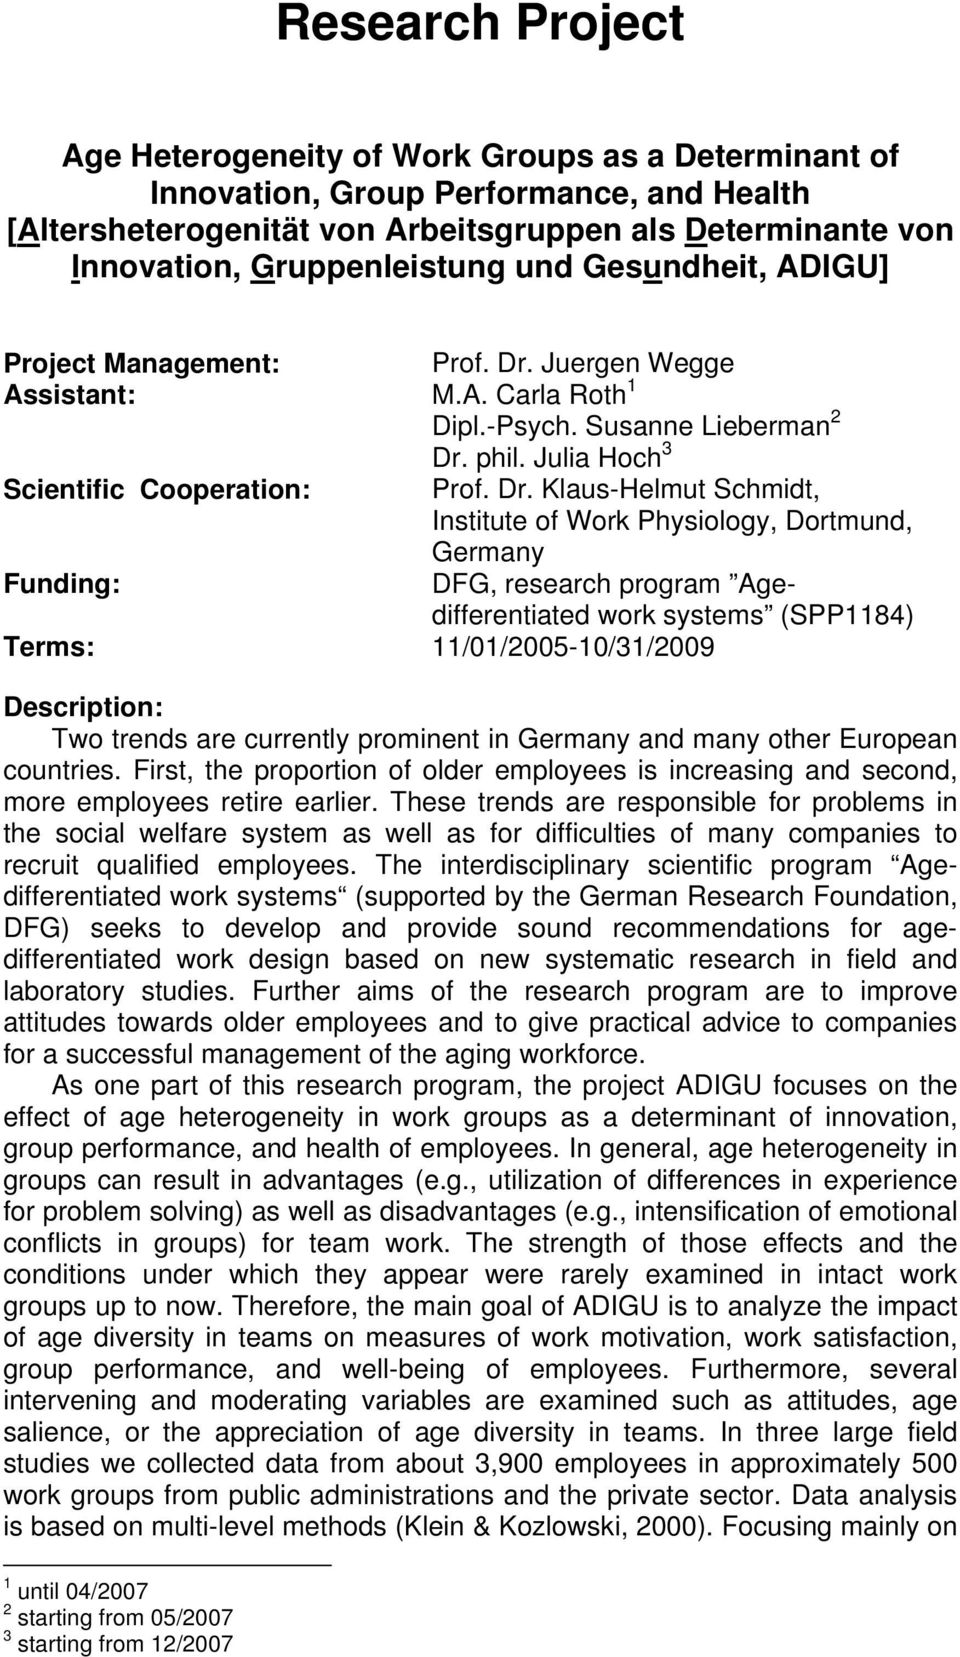 Dr. Klaus-Helmut Schmidt, Institute of Work Physiology, Dortmund, Germany Funding: DFG, research program Agedifferentiated work systems (SPP1184) Terms: 11/01/2005-10/31/2009 Description: Two trends